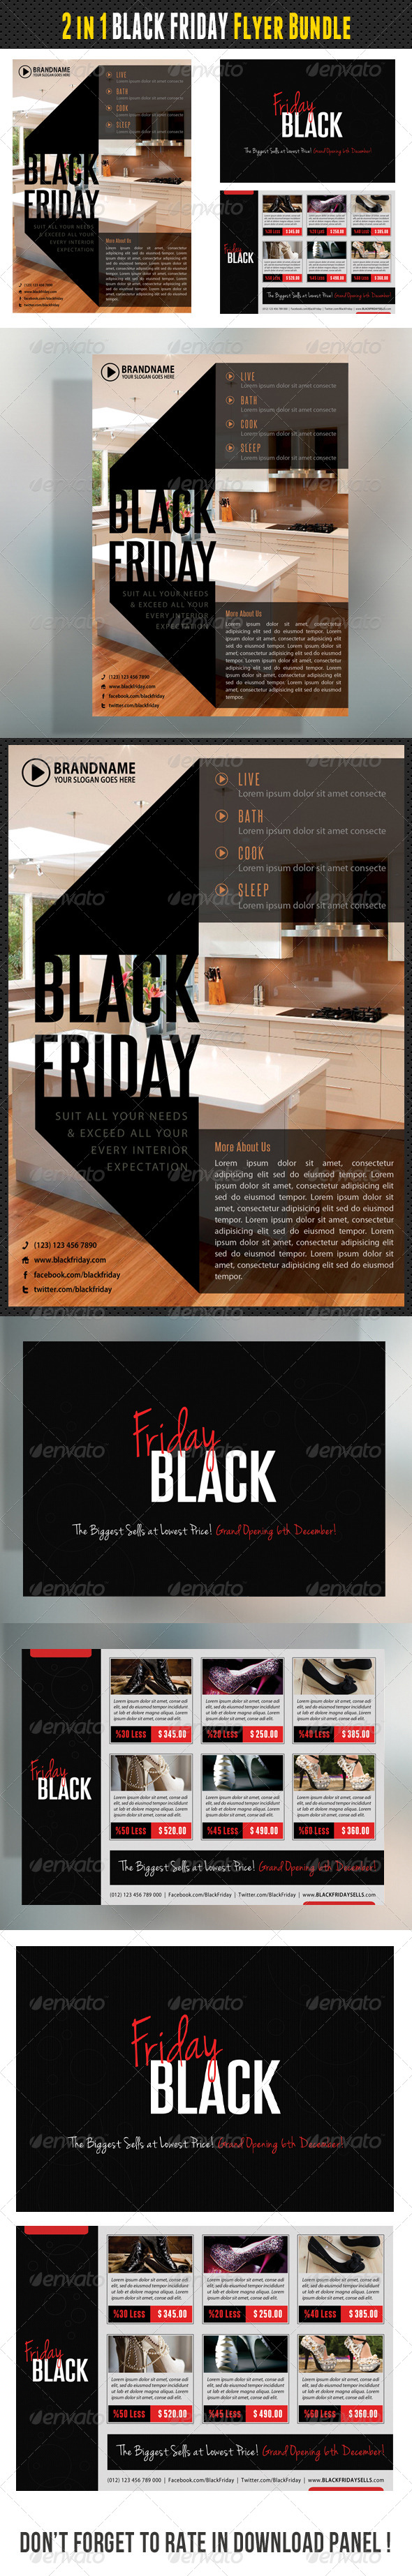 GraphicRiver 2 in 1 Black Friday Flyers Bundle 01 8336812